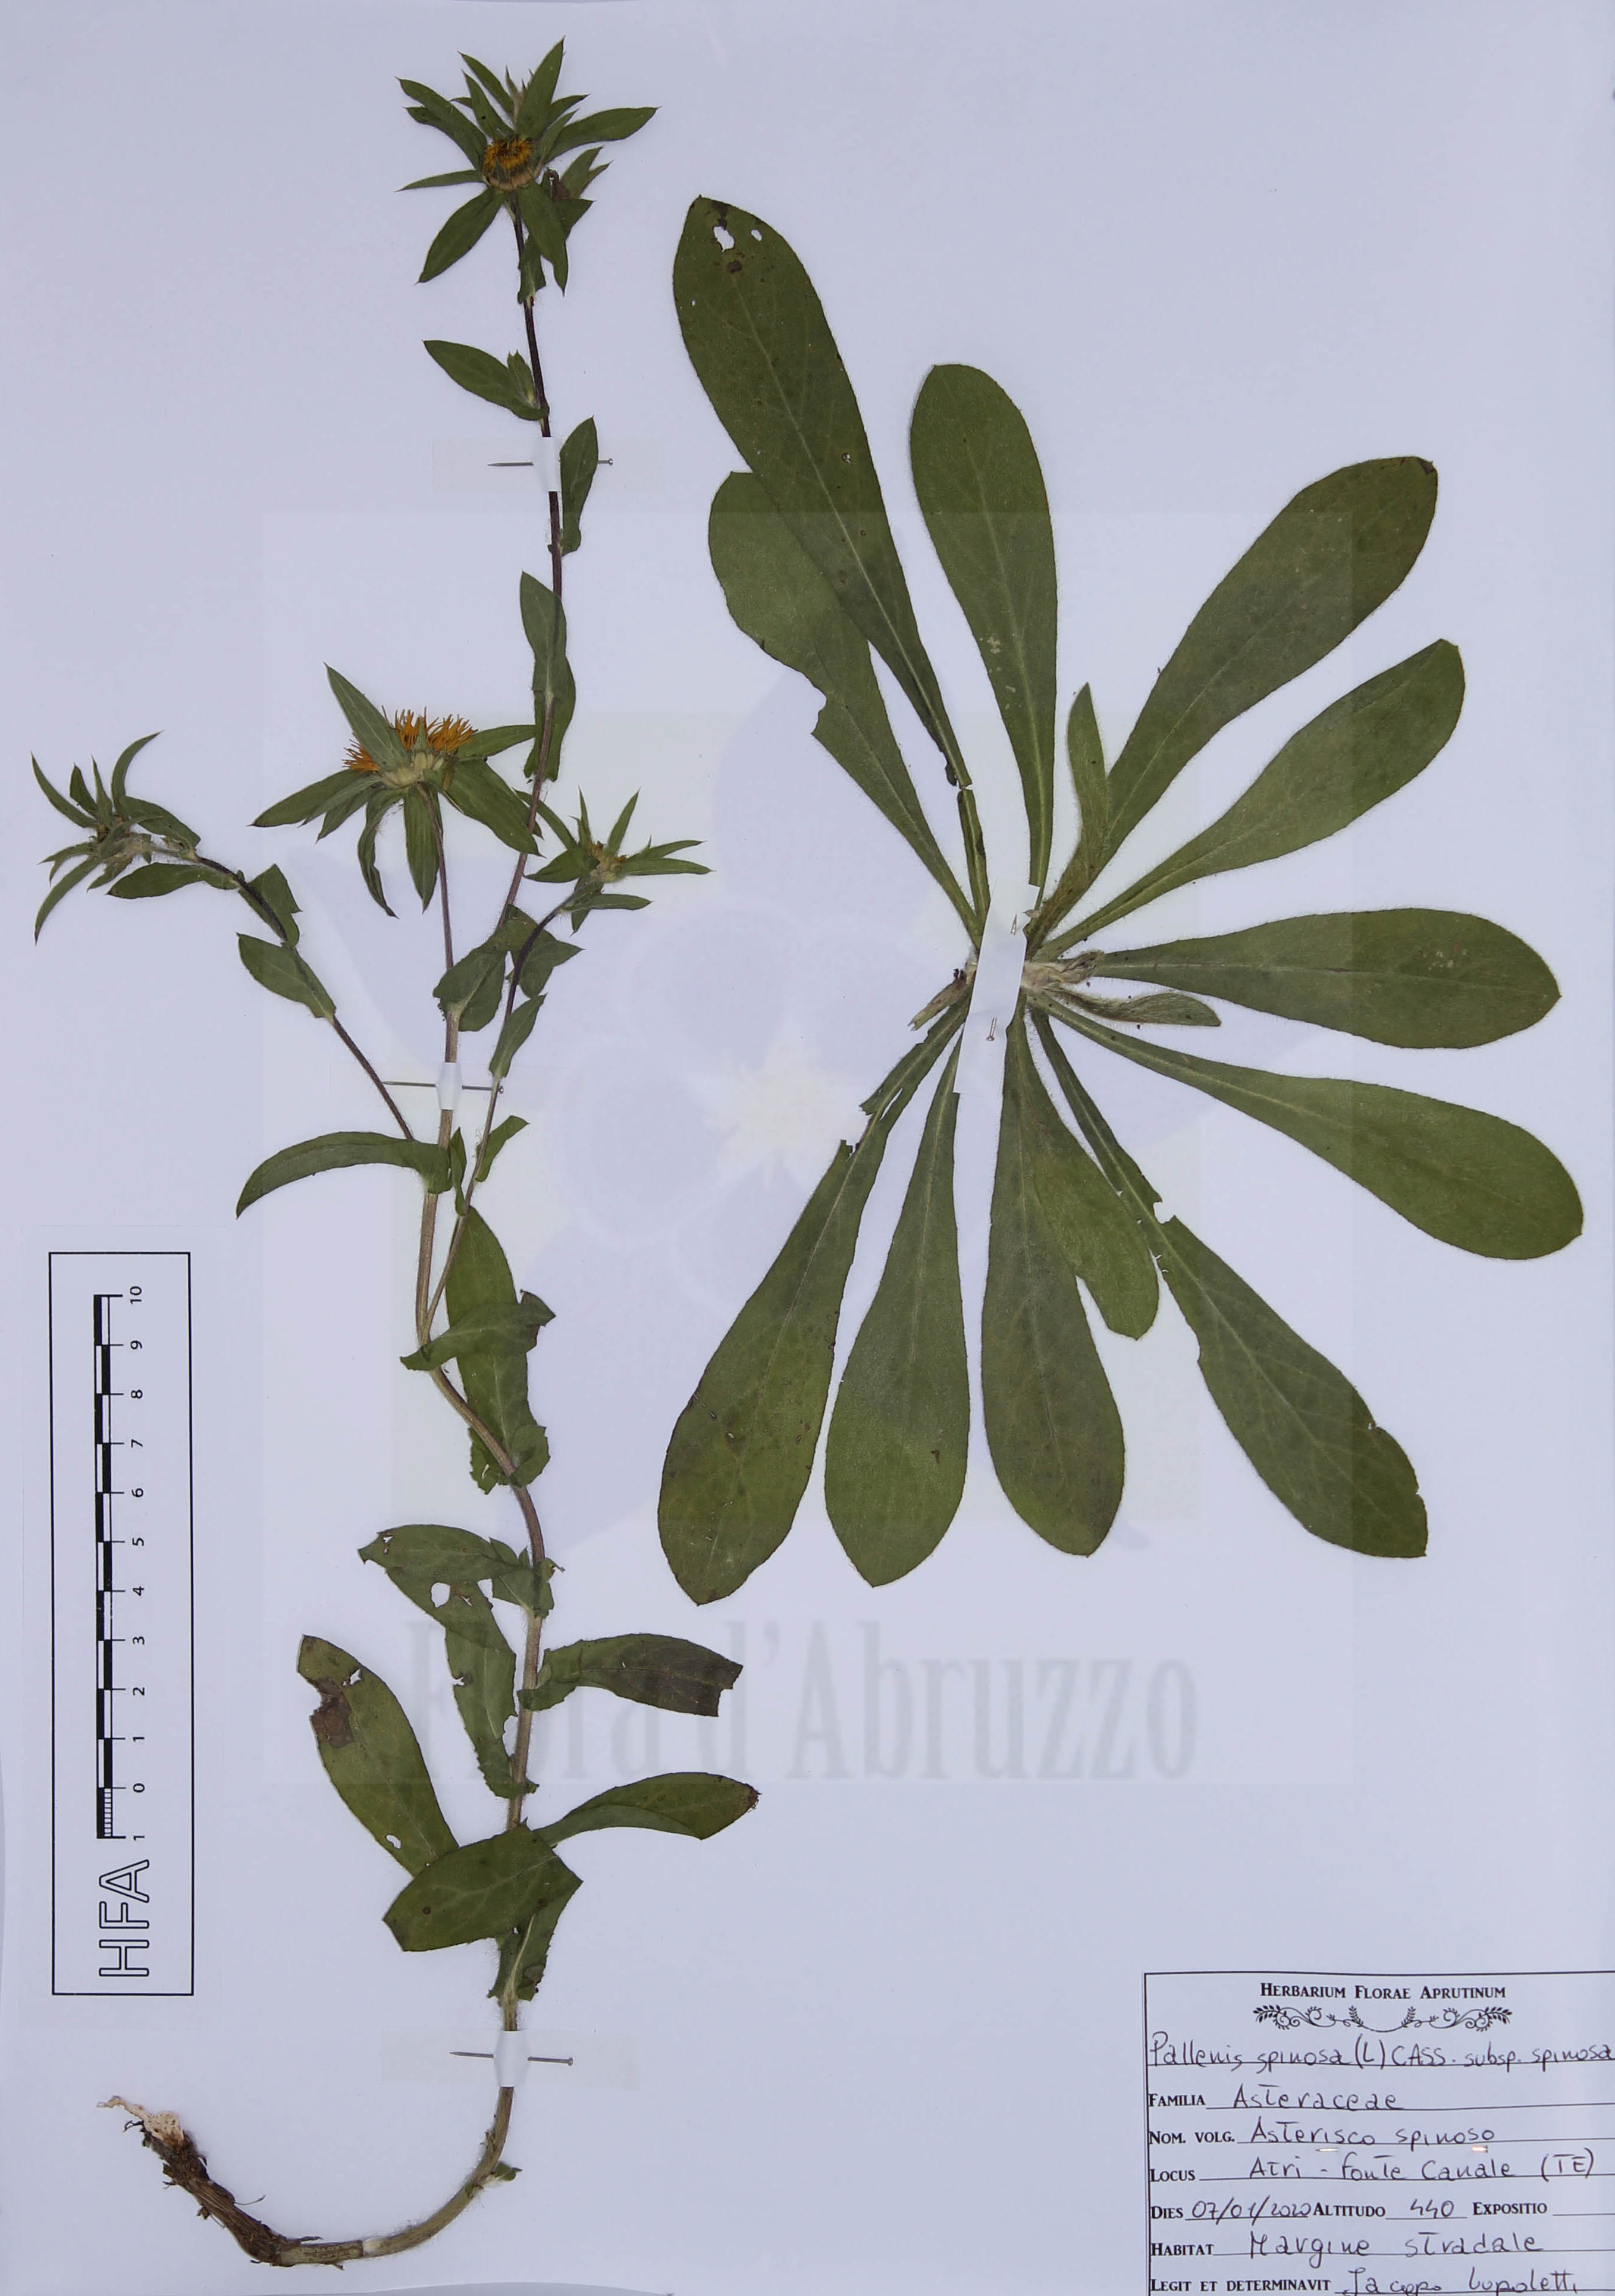 Pallenis spinosa (L.) Cass. subsp. spinosa